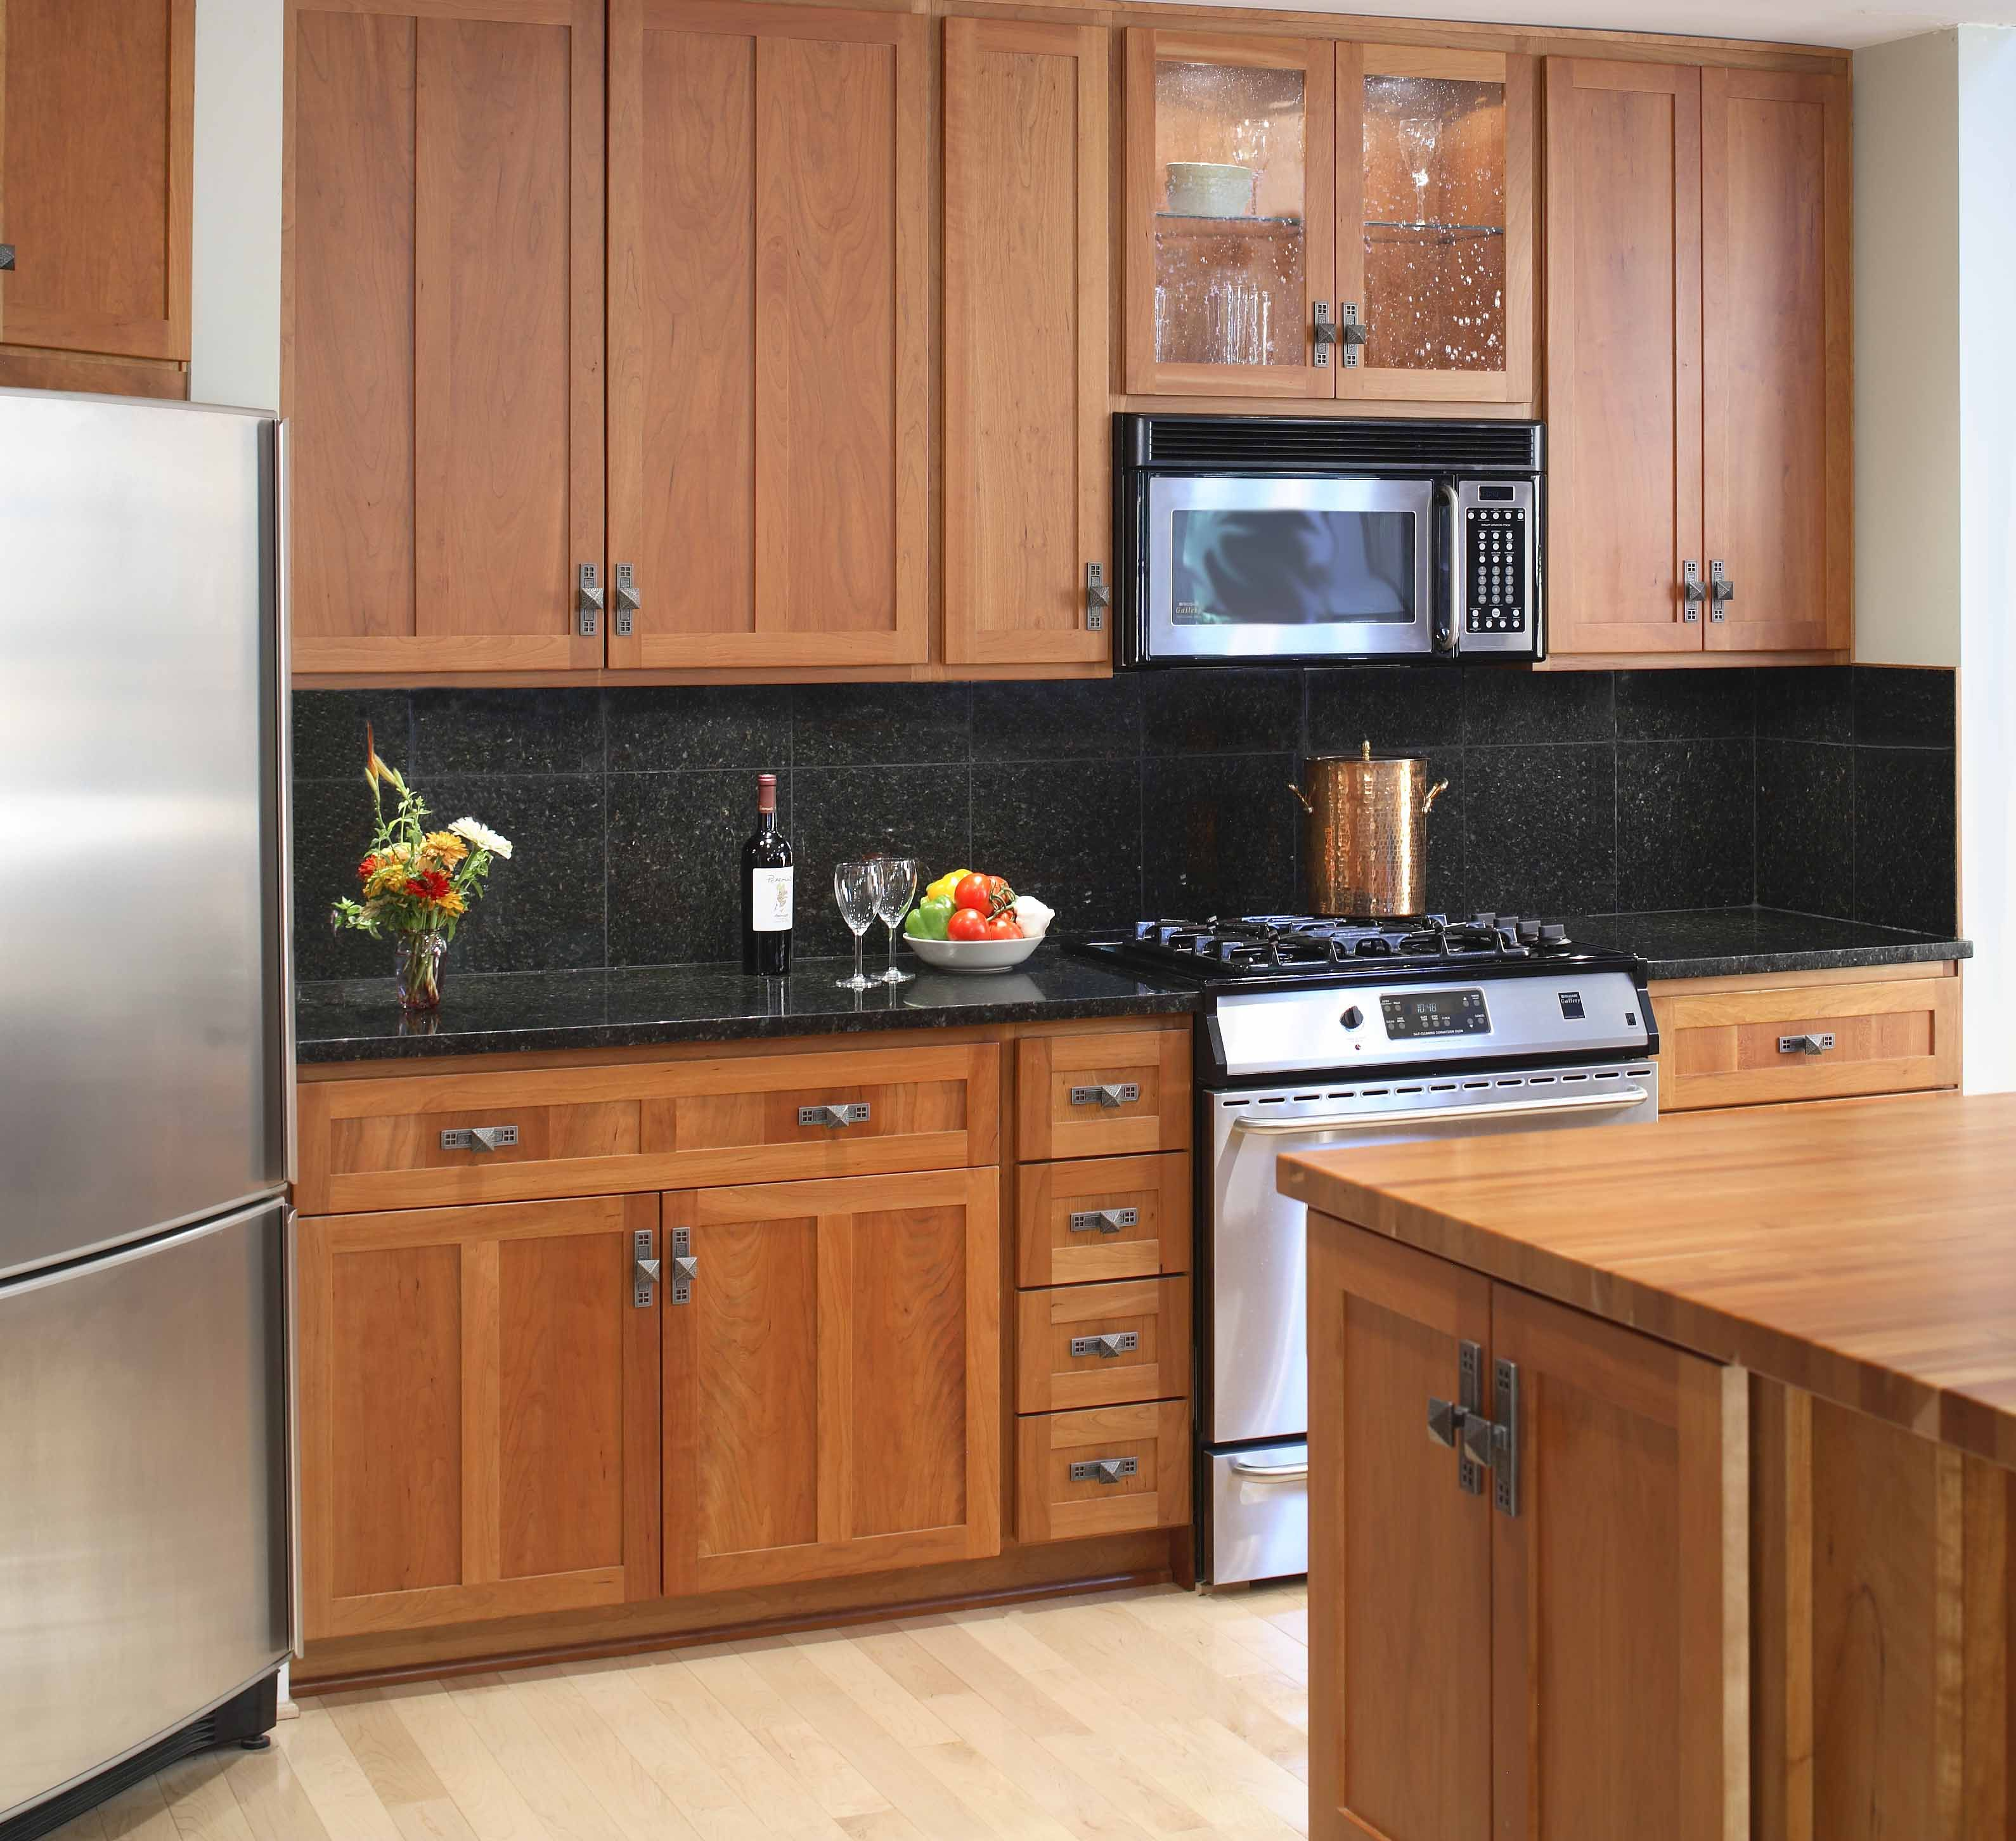 Kitchen Backsplash Cherry Cabinets Black Counter Decorating 414998 ...